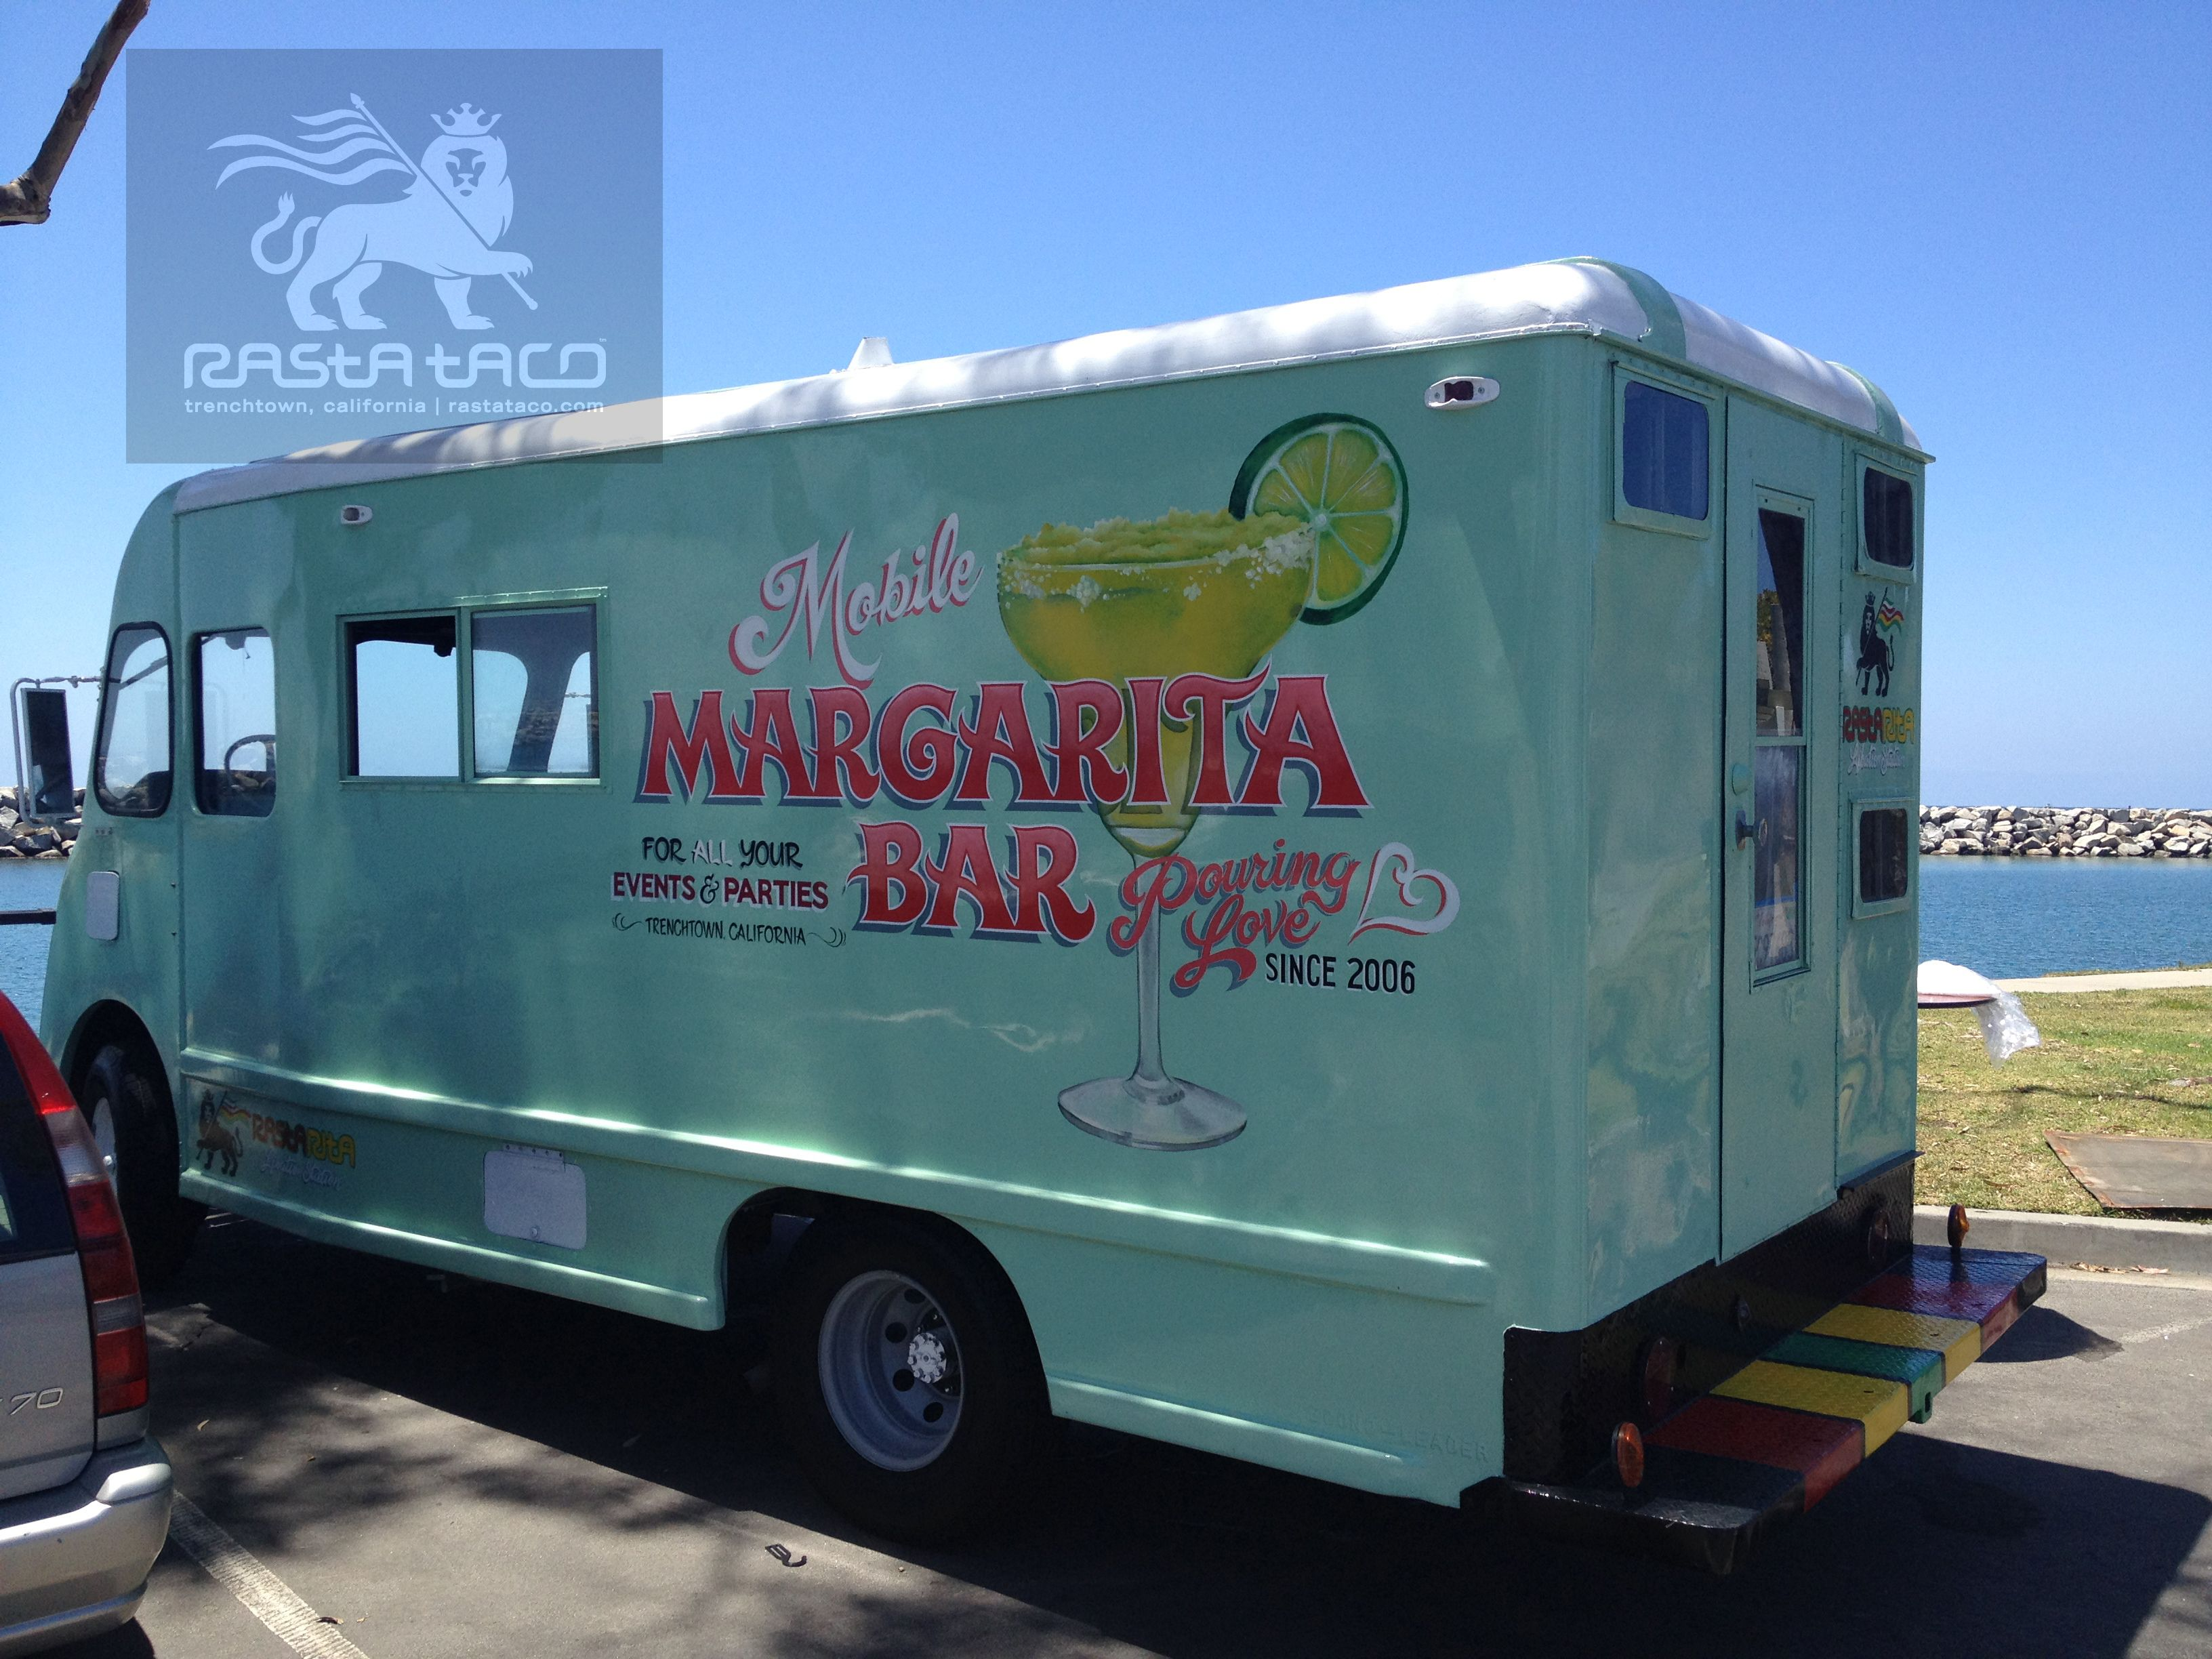 The Rastarita Mobile Margarita Truck is the world s first ABC